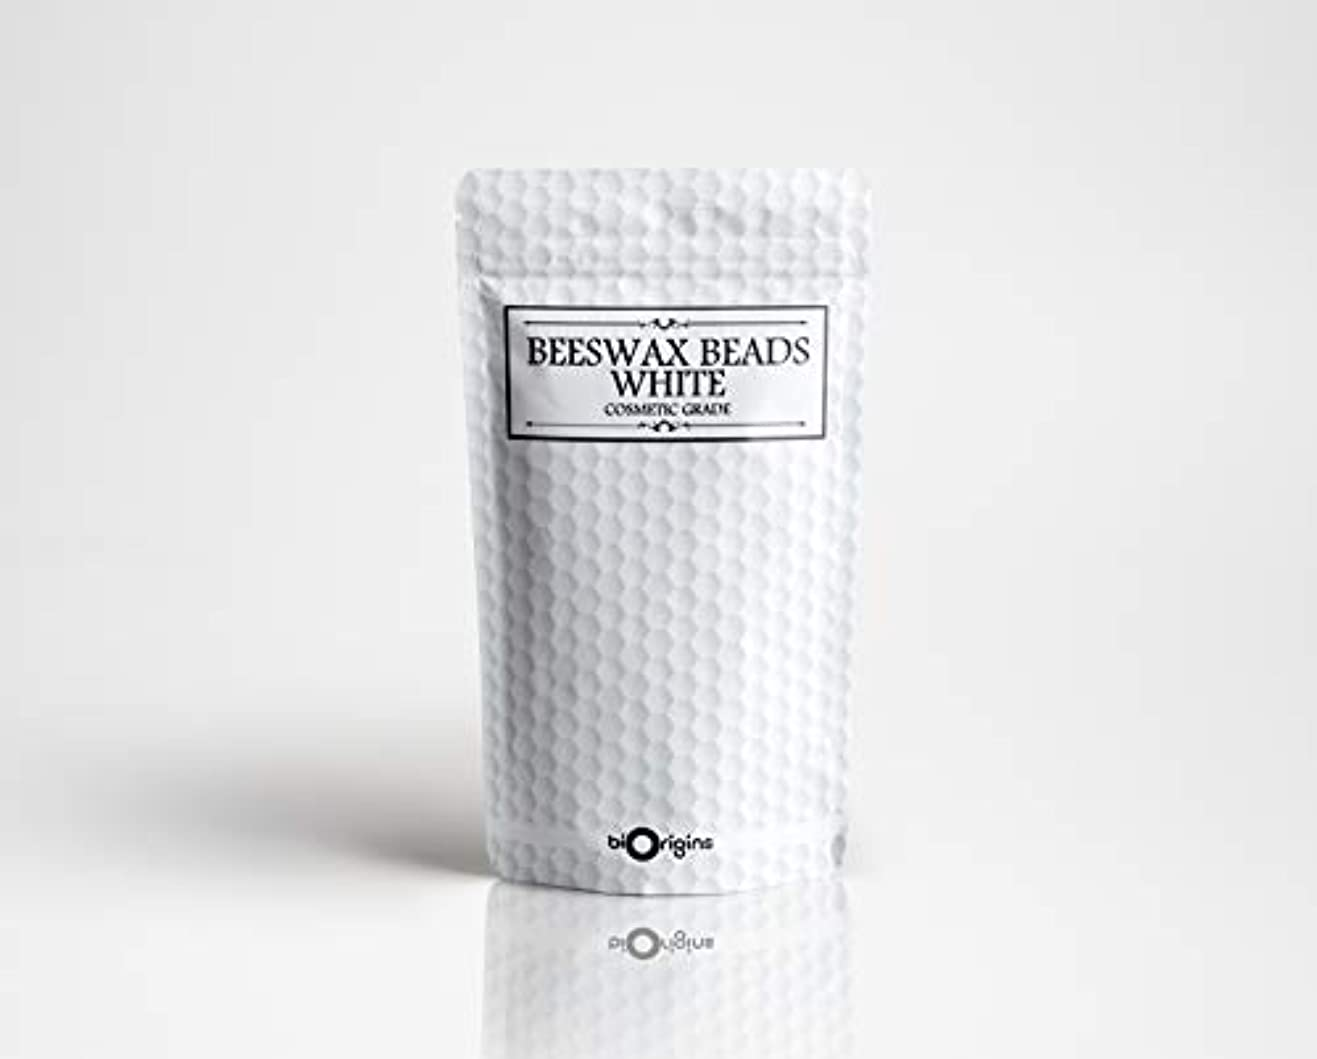 仮装膨らませる野心的Beeswax Beads White - Cosmetic Grade - 100g